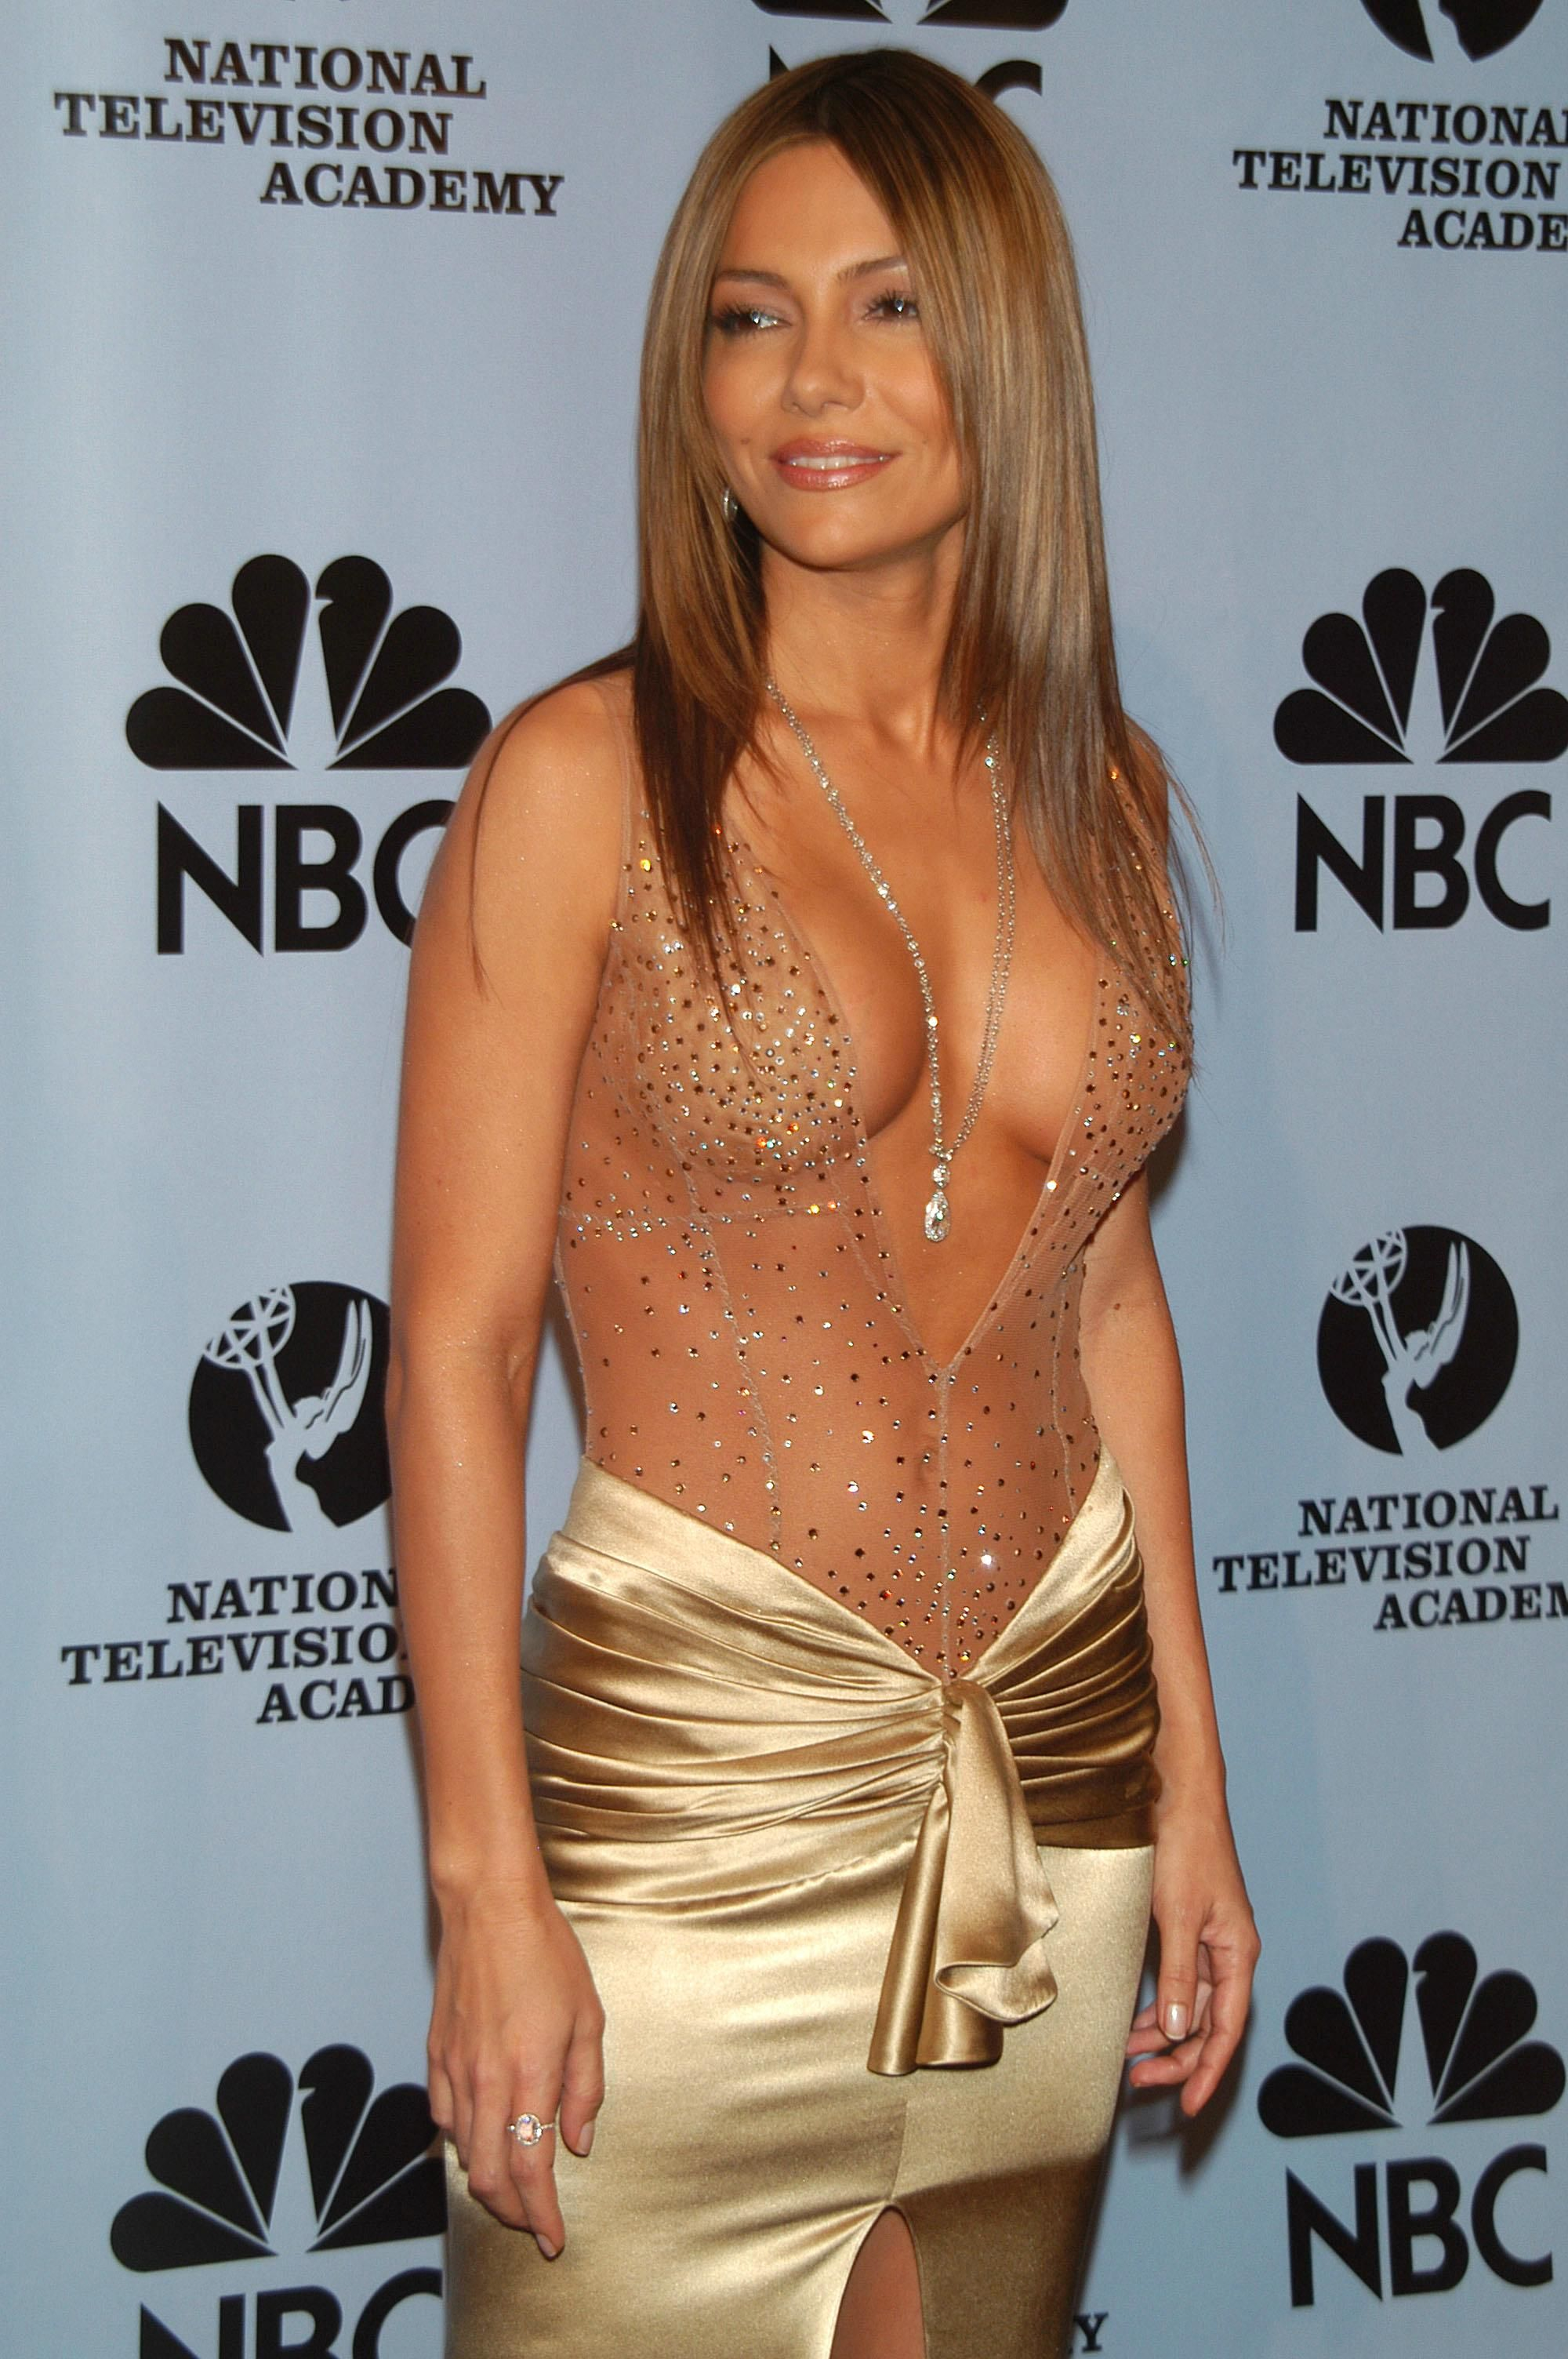 Cleavage Vanessa Marcil nude (25 photos), Sexy, Paparazzi, Selfie, cleavage 2017